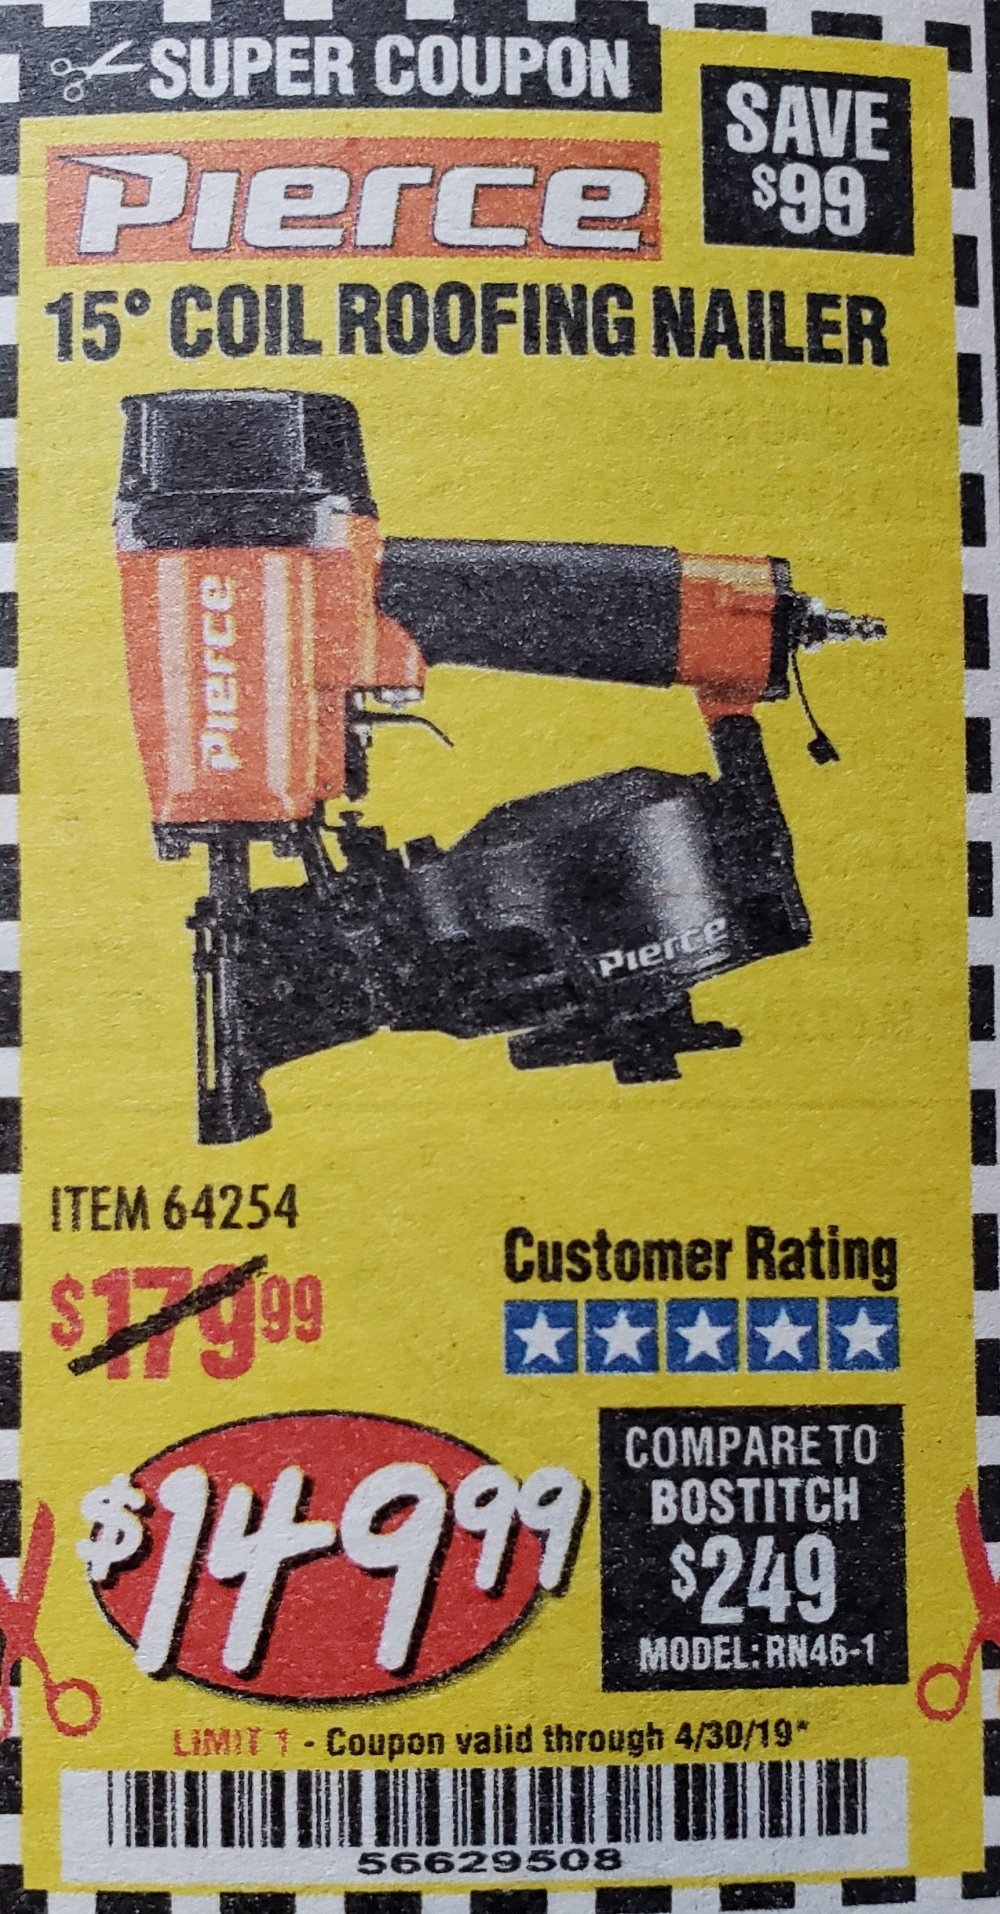 Harbor Freight Coupon, HF Coupons - Pierce Professional Roofing Nailer